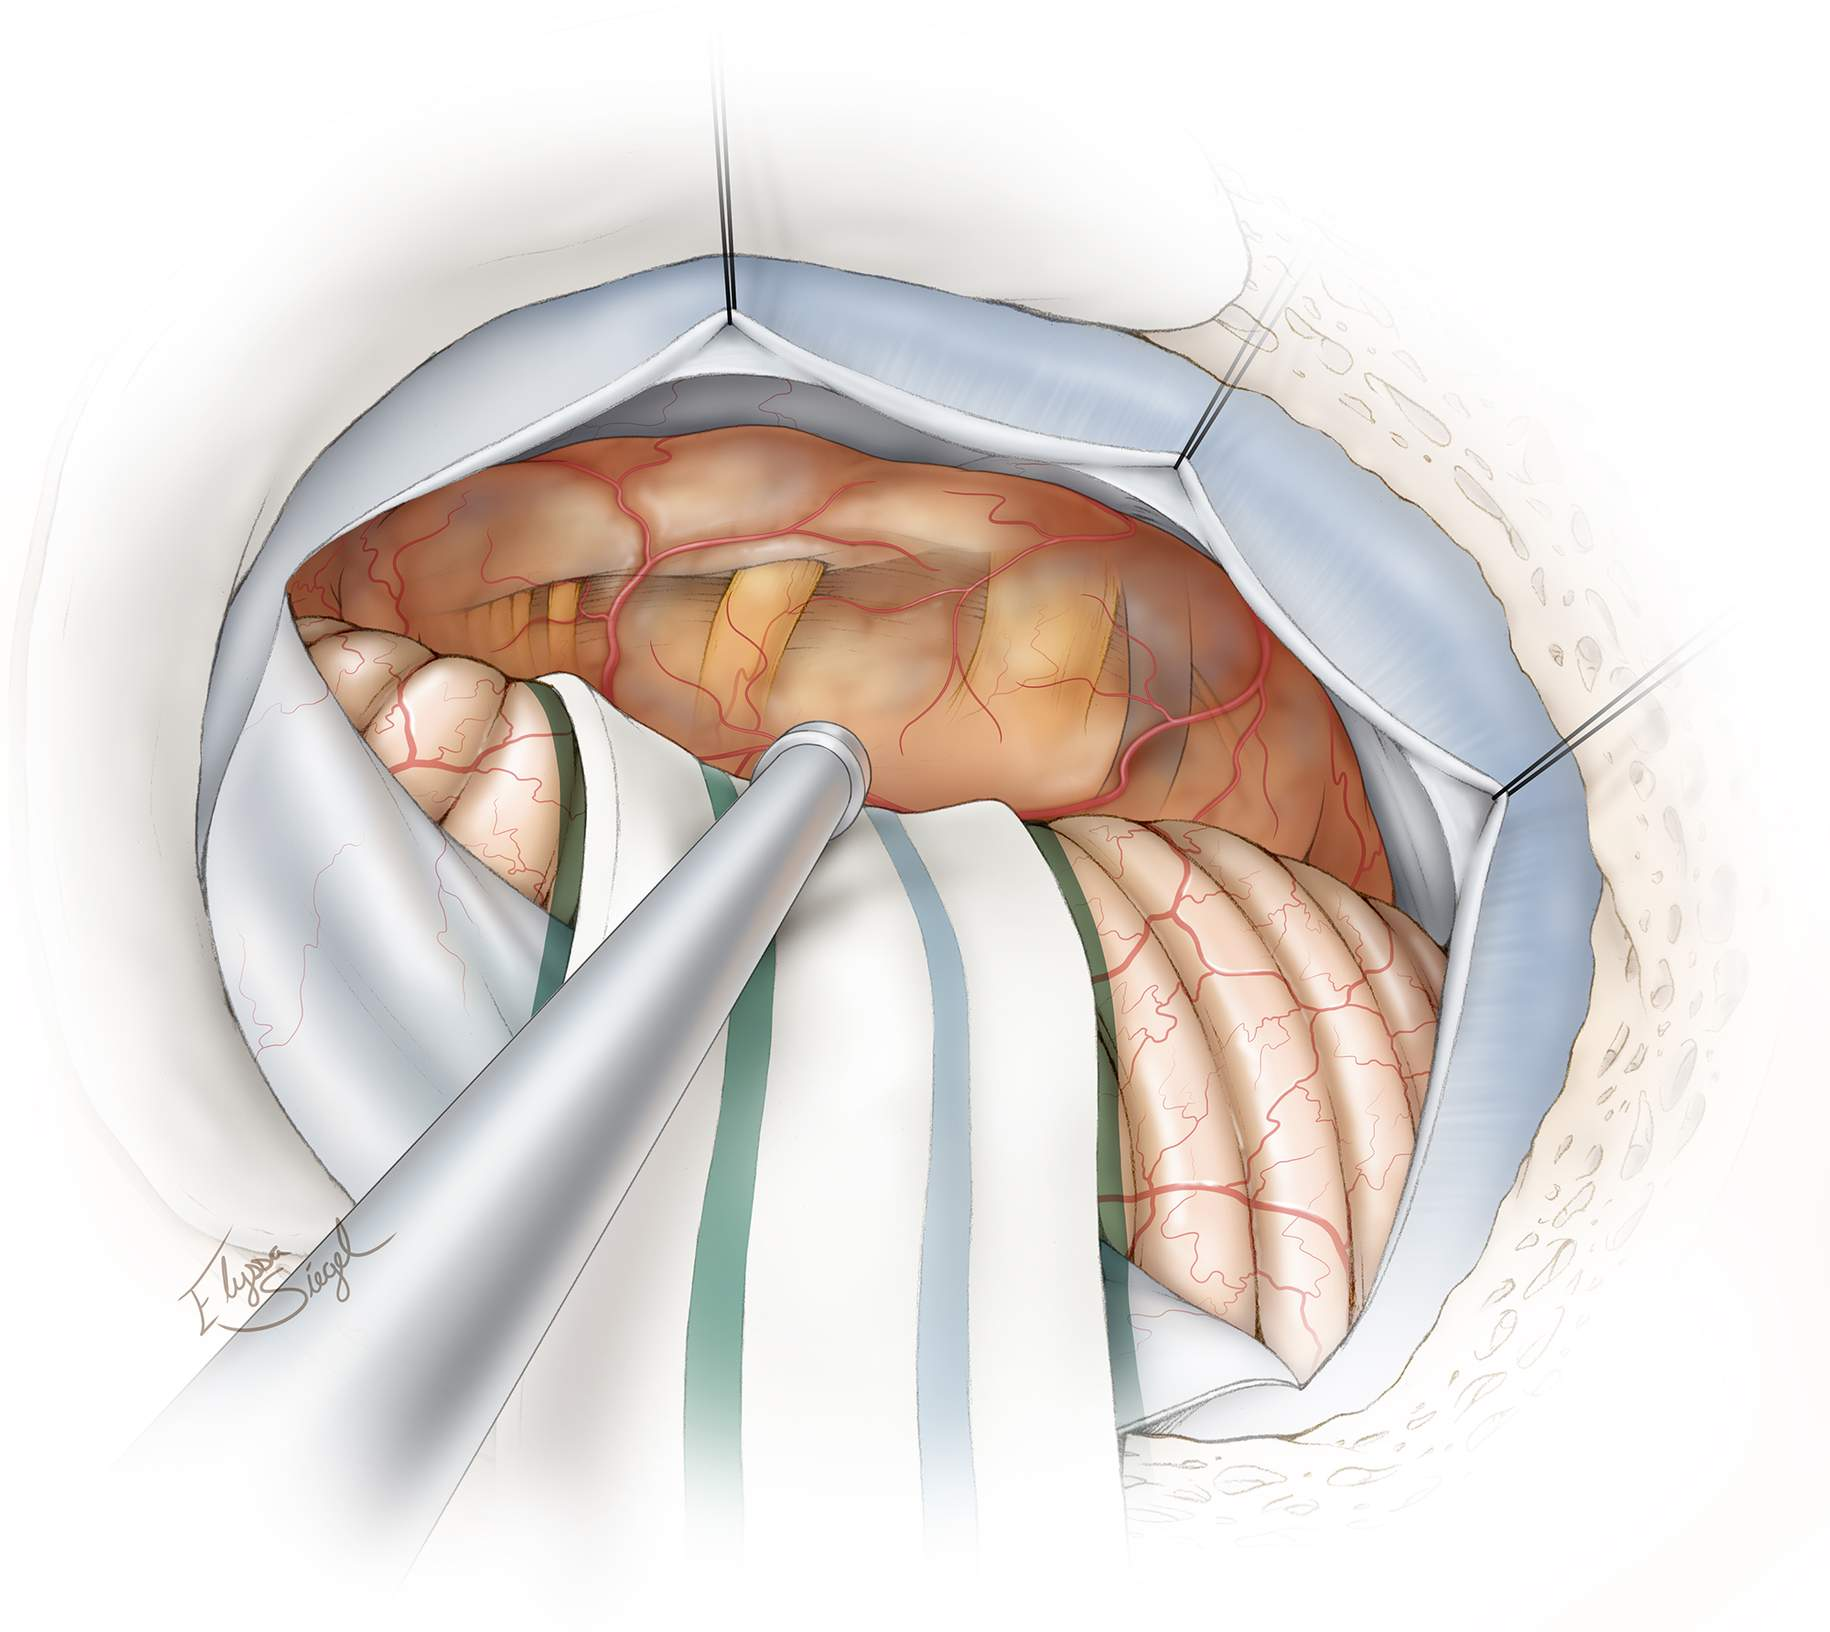 Figure 5: The approximate distribution of the cranial nerves in relation to the anterior capsule of a postmeatal tumor is shown. A careful study of the preoperative MR images should provide the surgeon with a 3D understanding of the pathoanatomy of the mass and the location of vital structures.